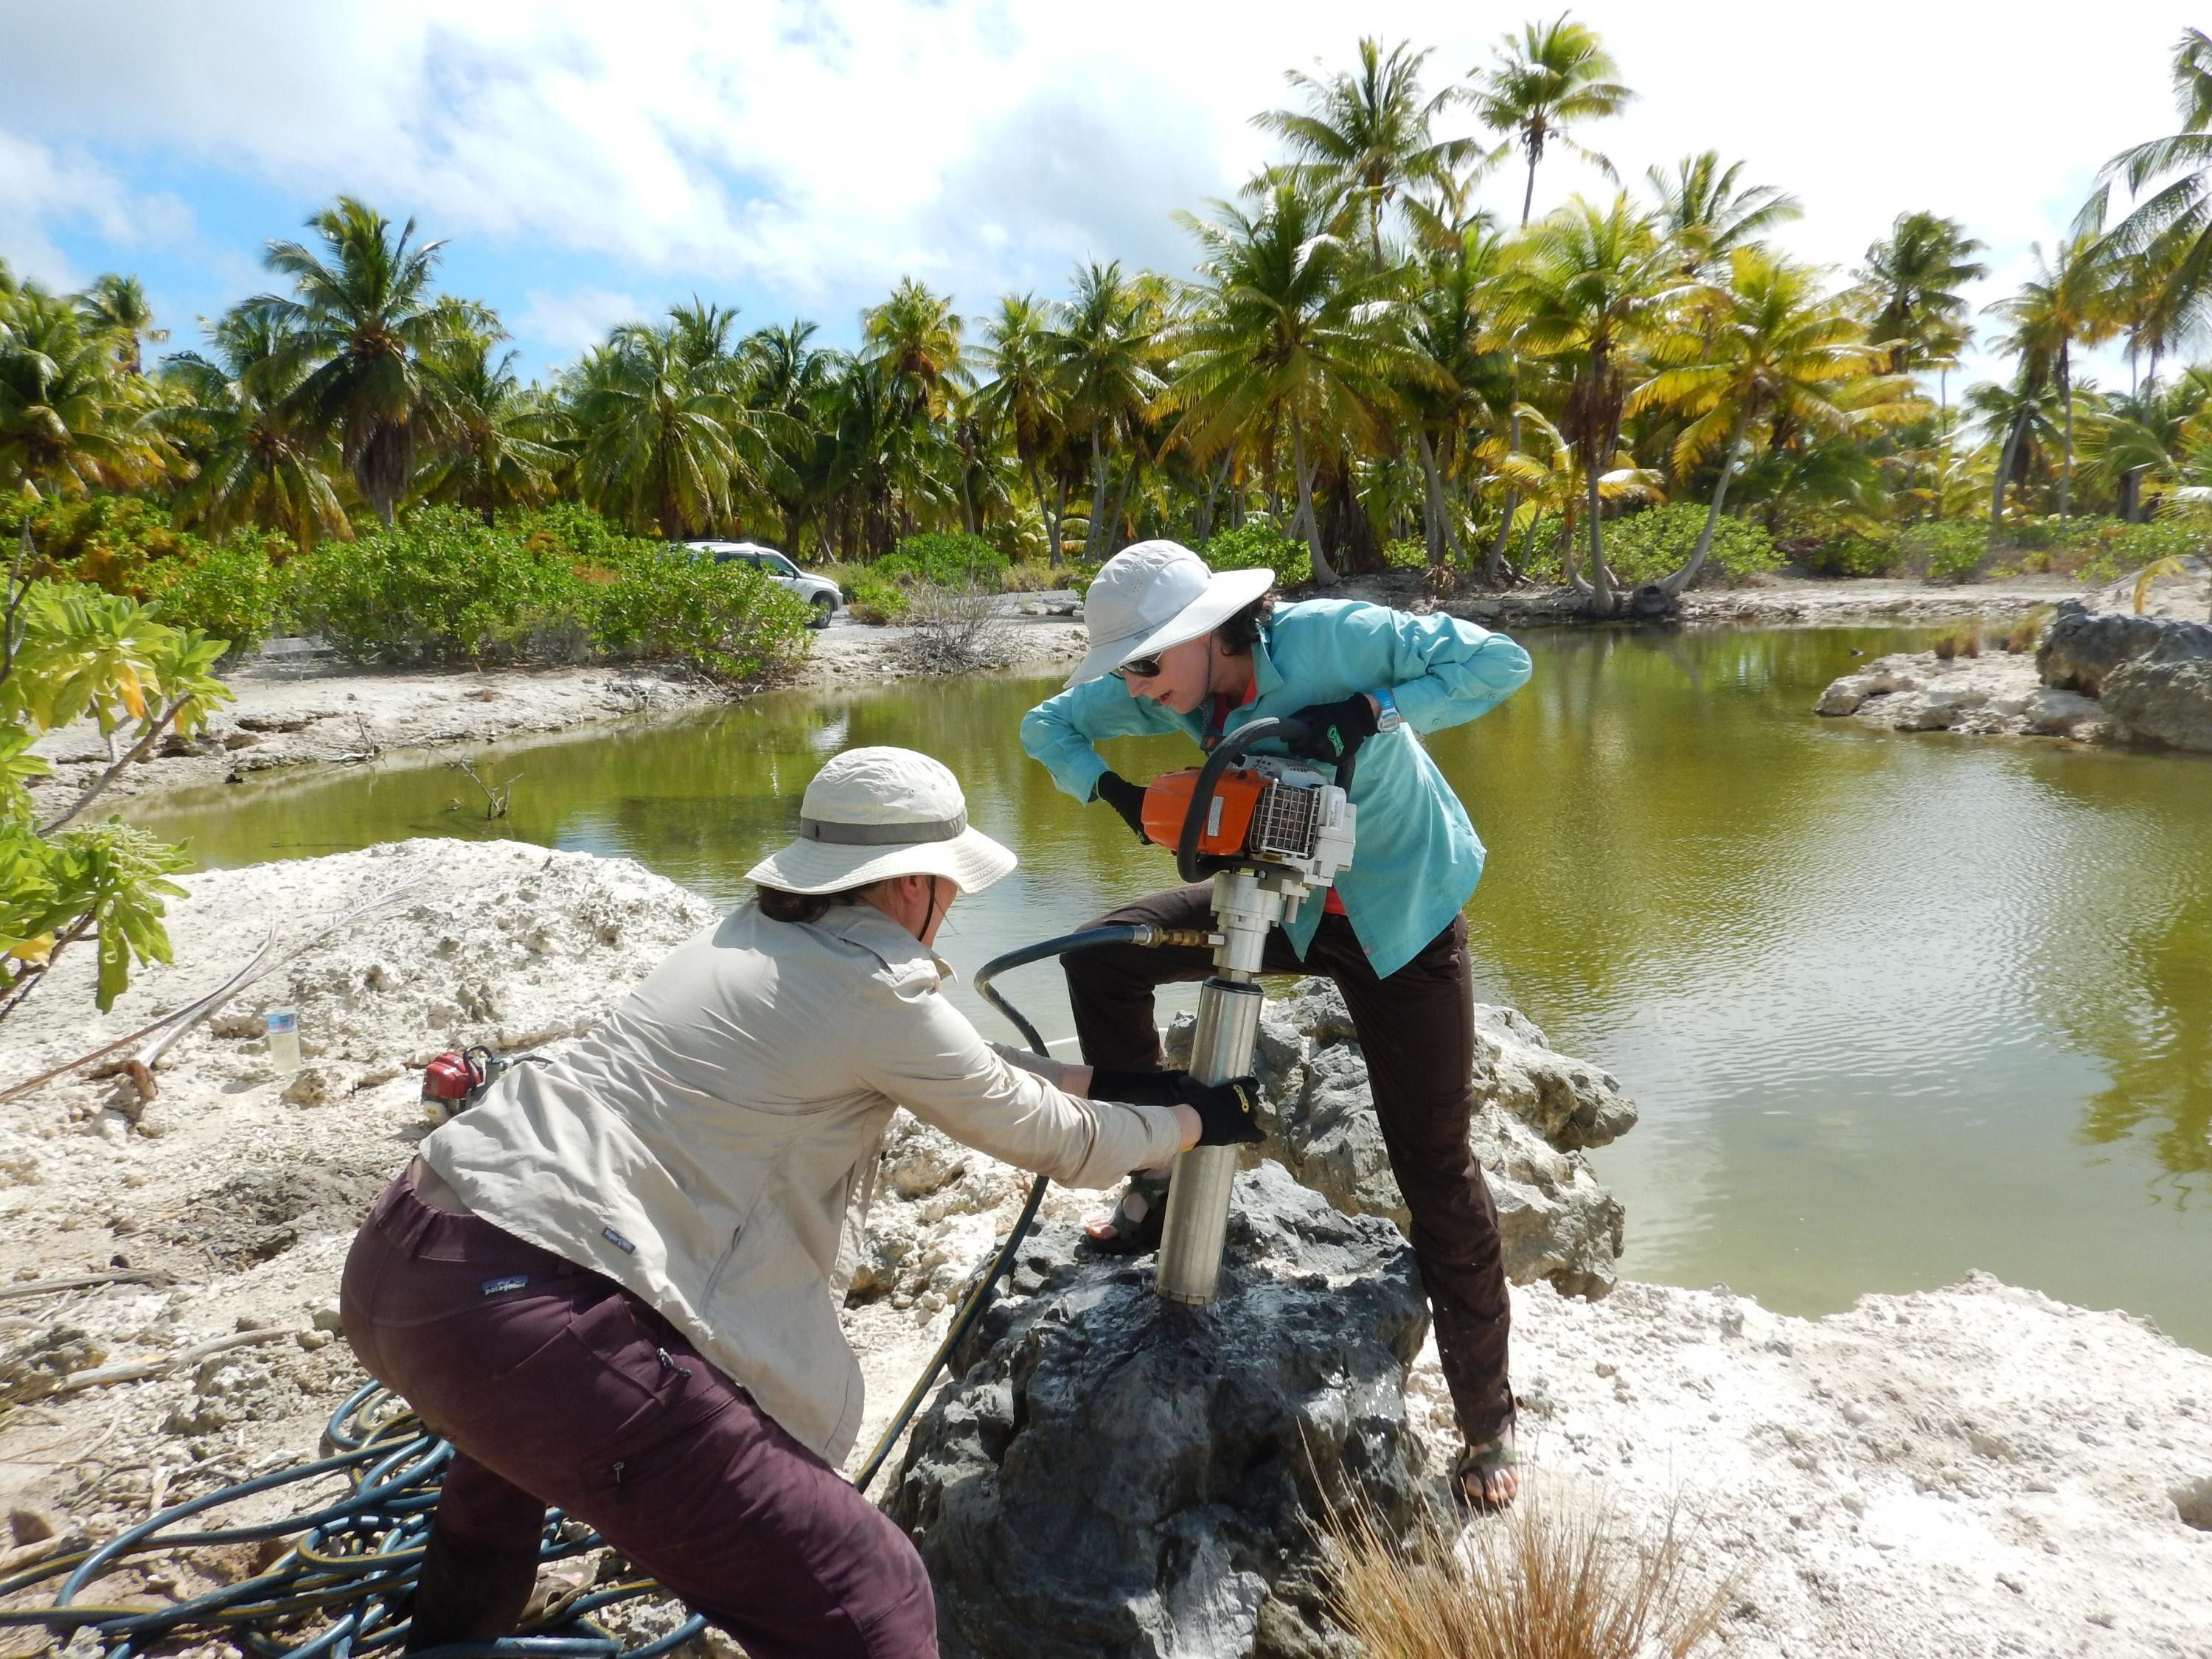 Pam Grothe and Alyssa Atwood drill into a 5,000-year-old coral fossil on Kiritimati Island.